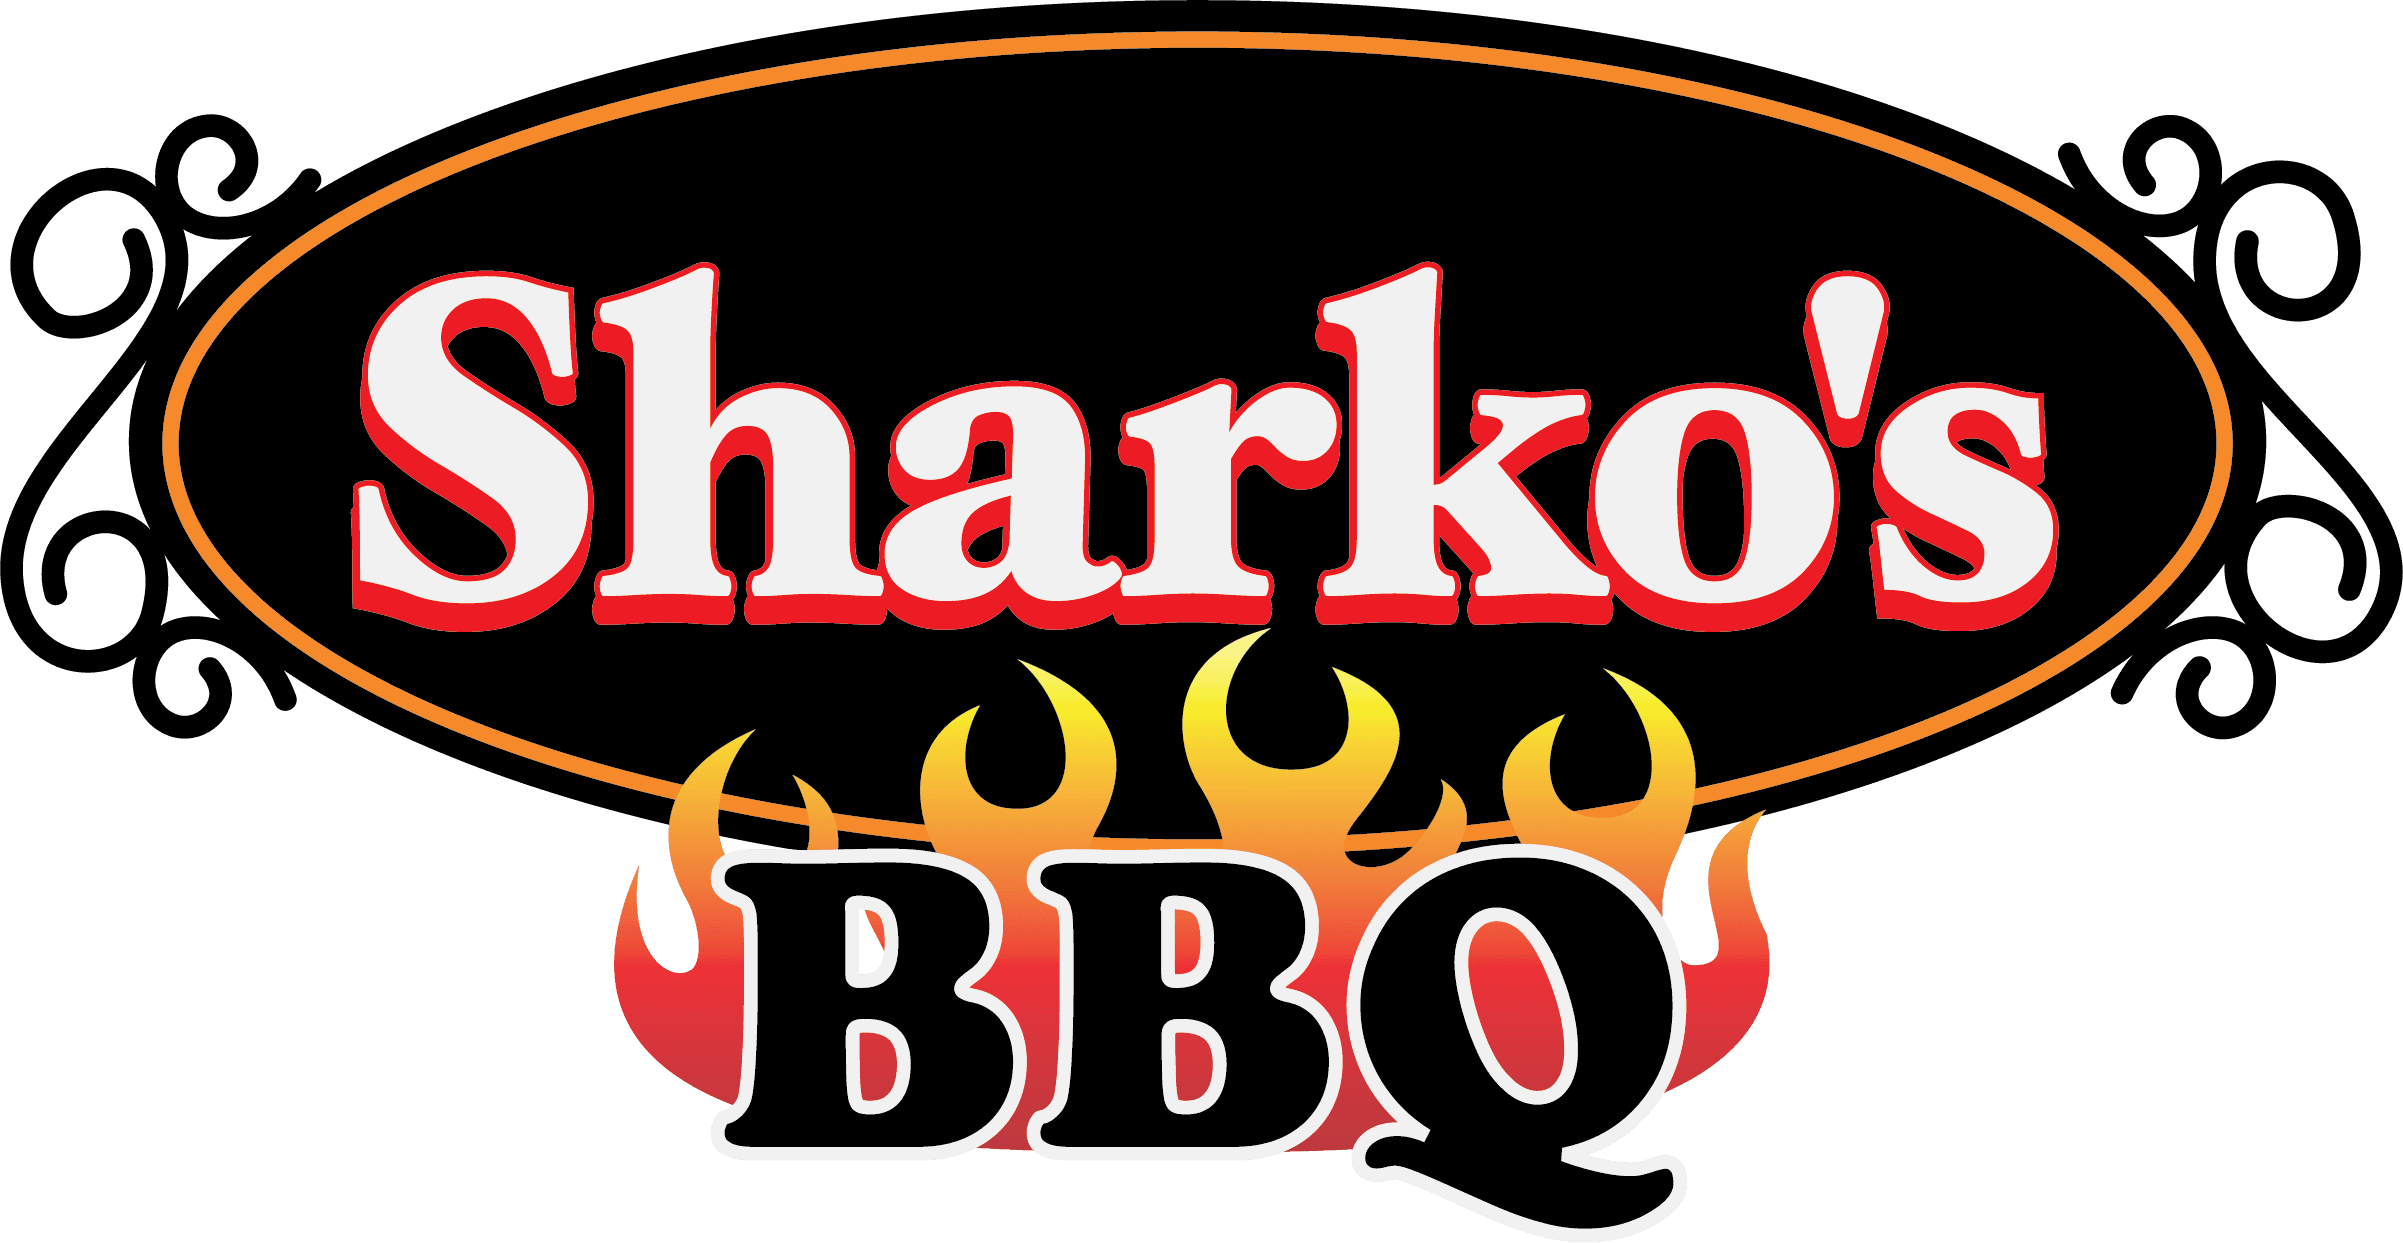 Sharkos Barbecue logo Opens in new window